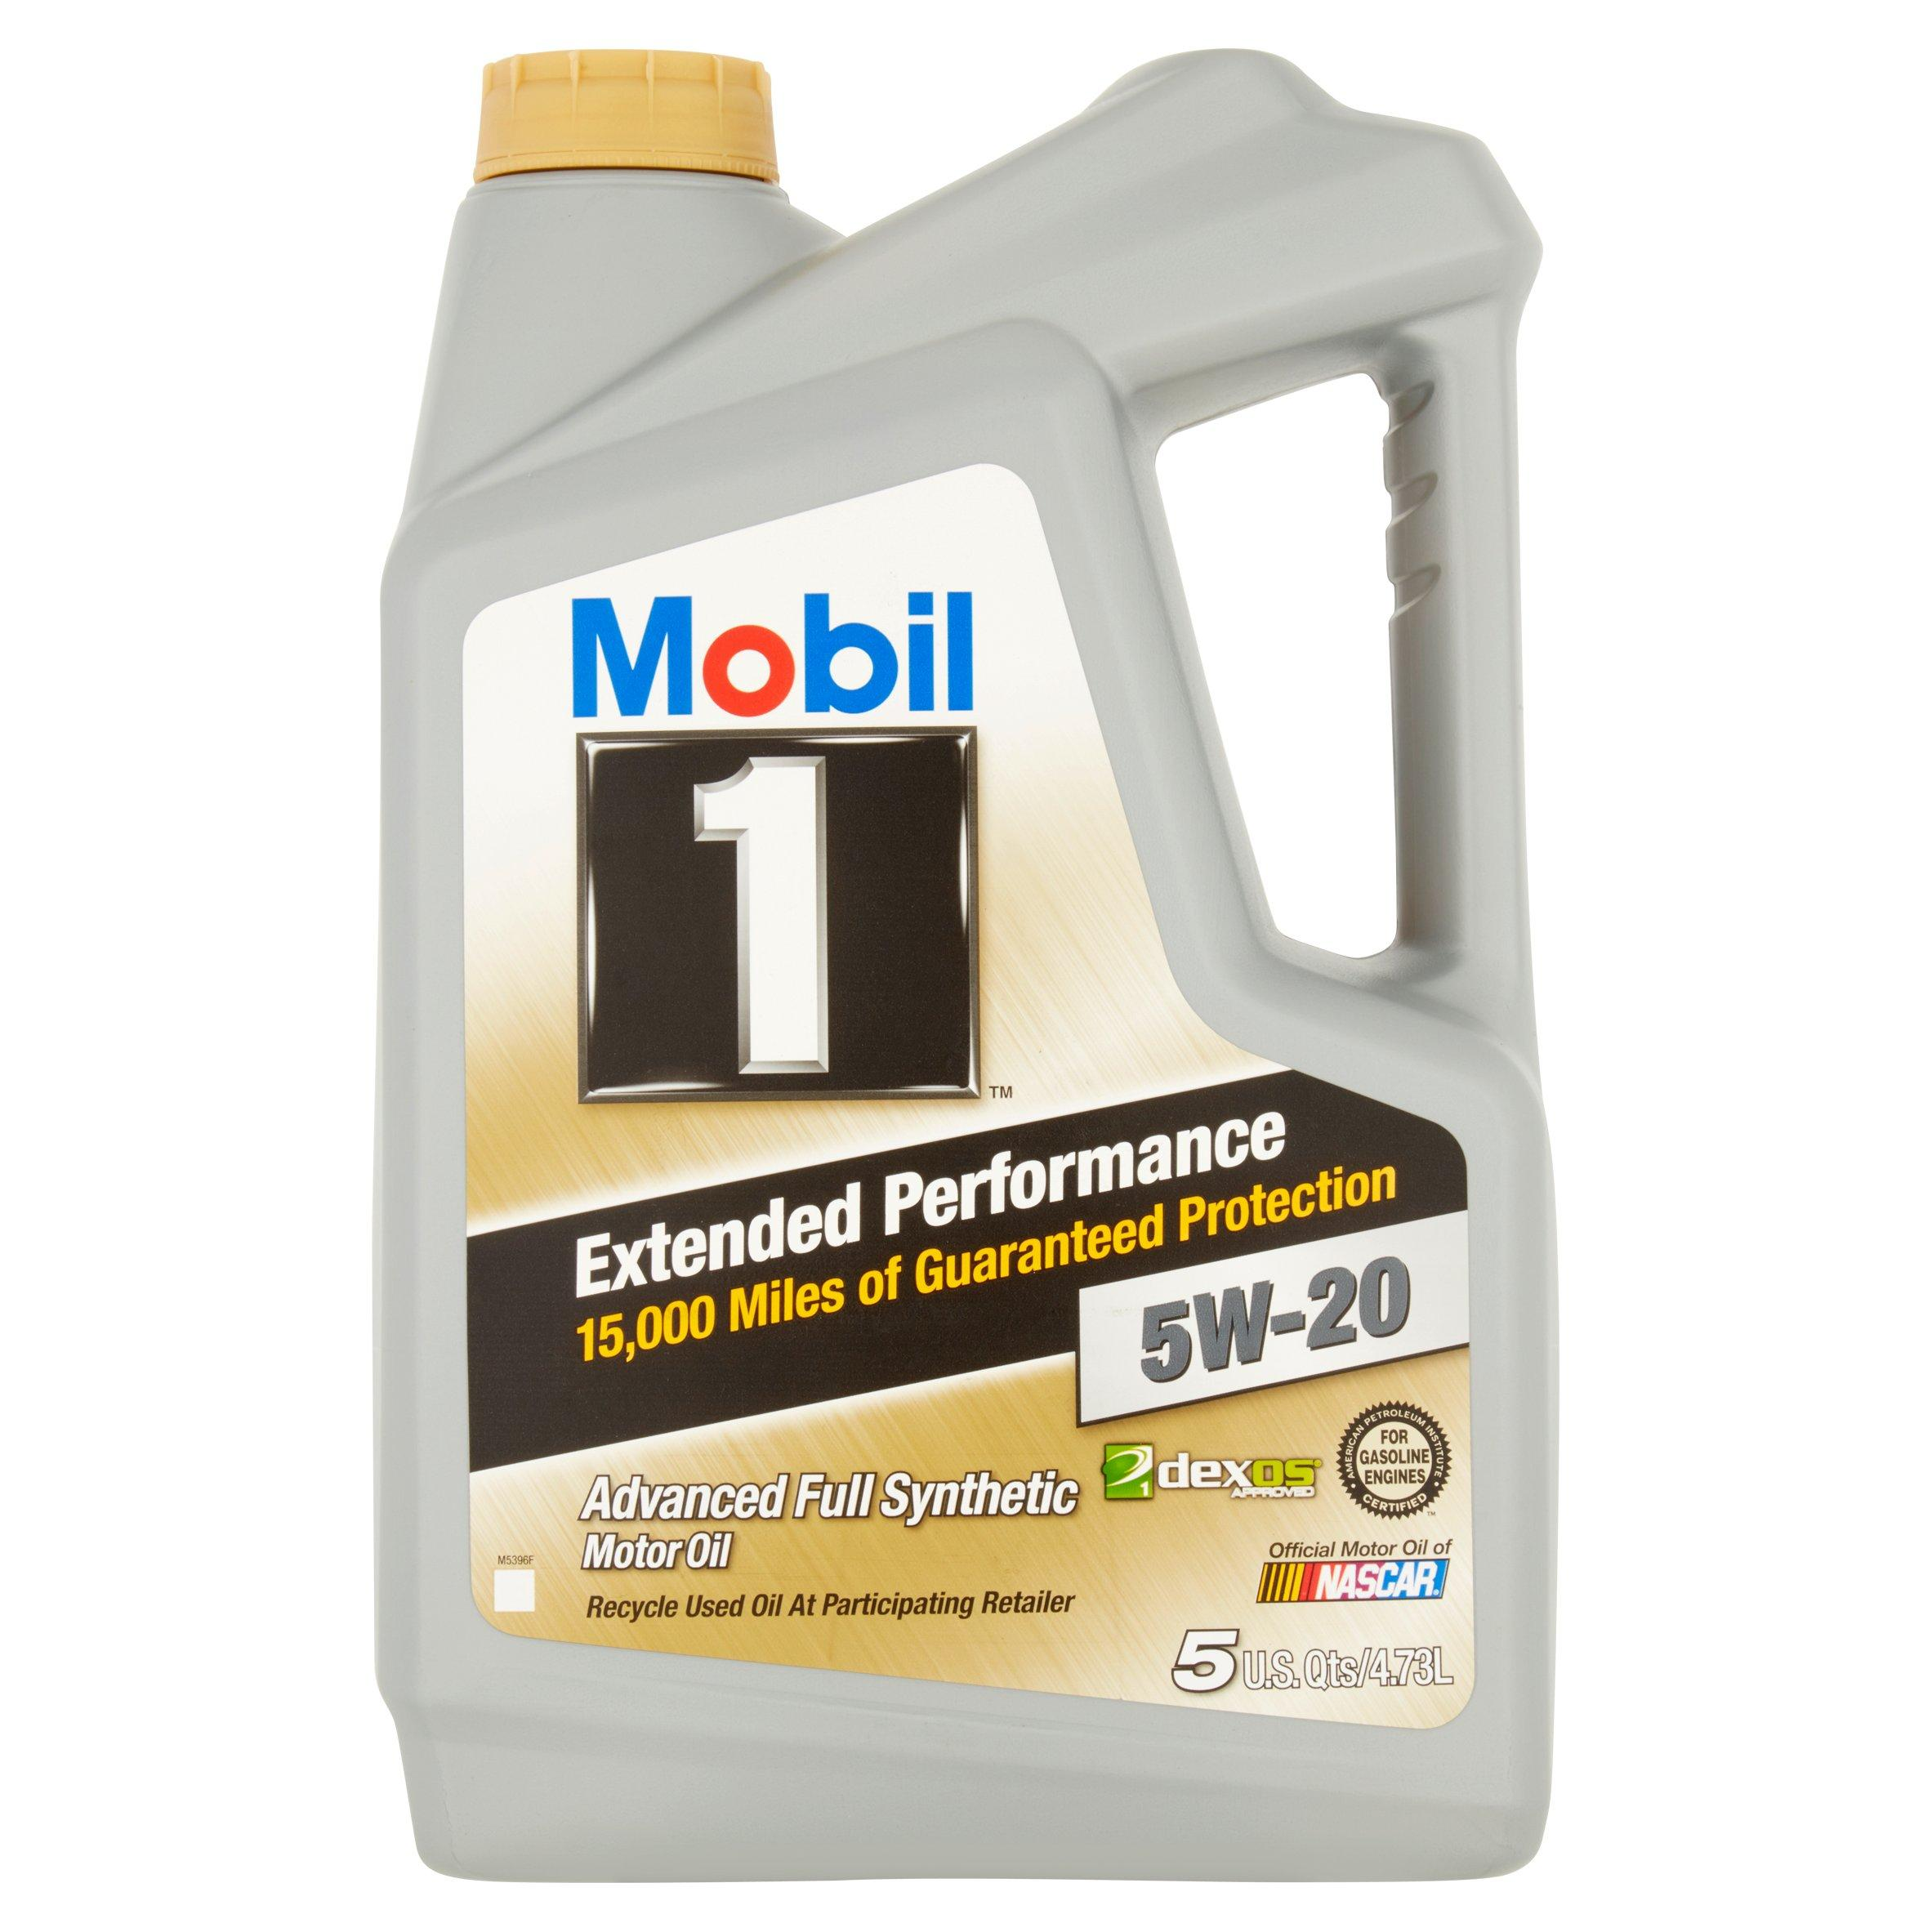 5-Quarts Mobil 1 Full Synthetic Motor Oil with Oil Filter